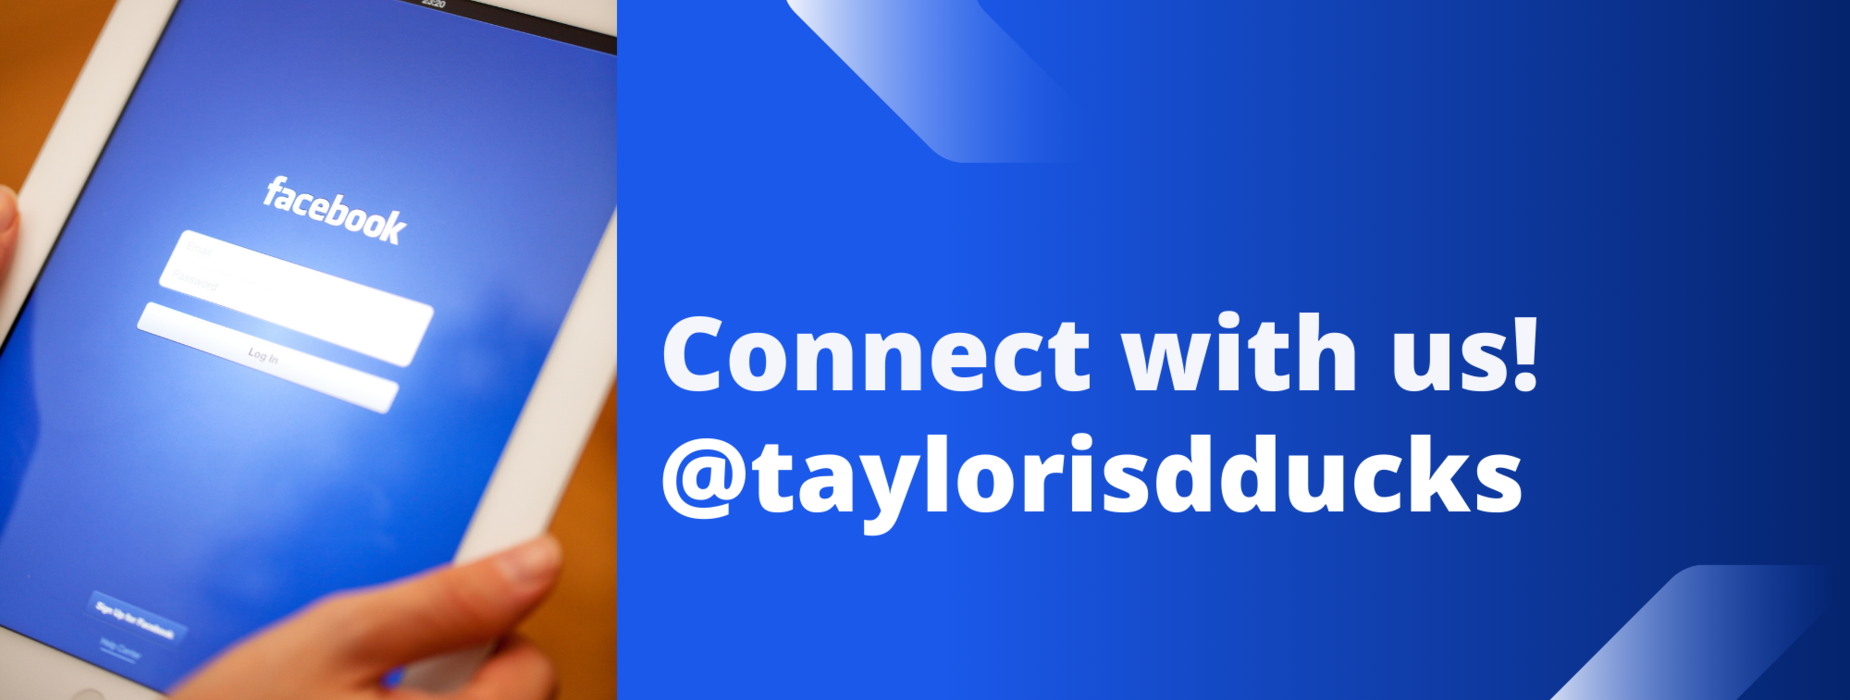 connect with us on Facebook banner